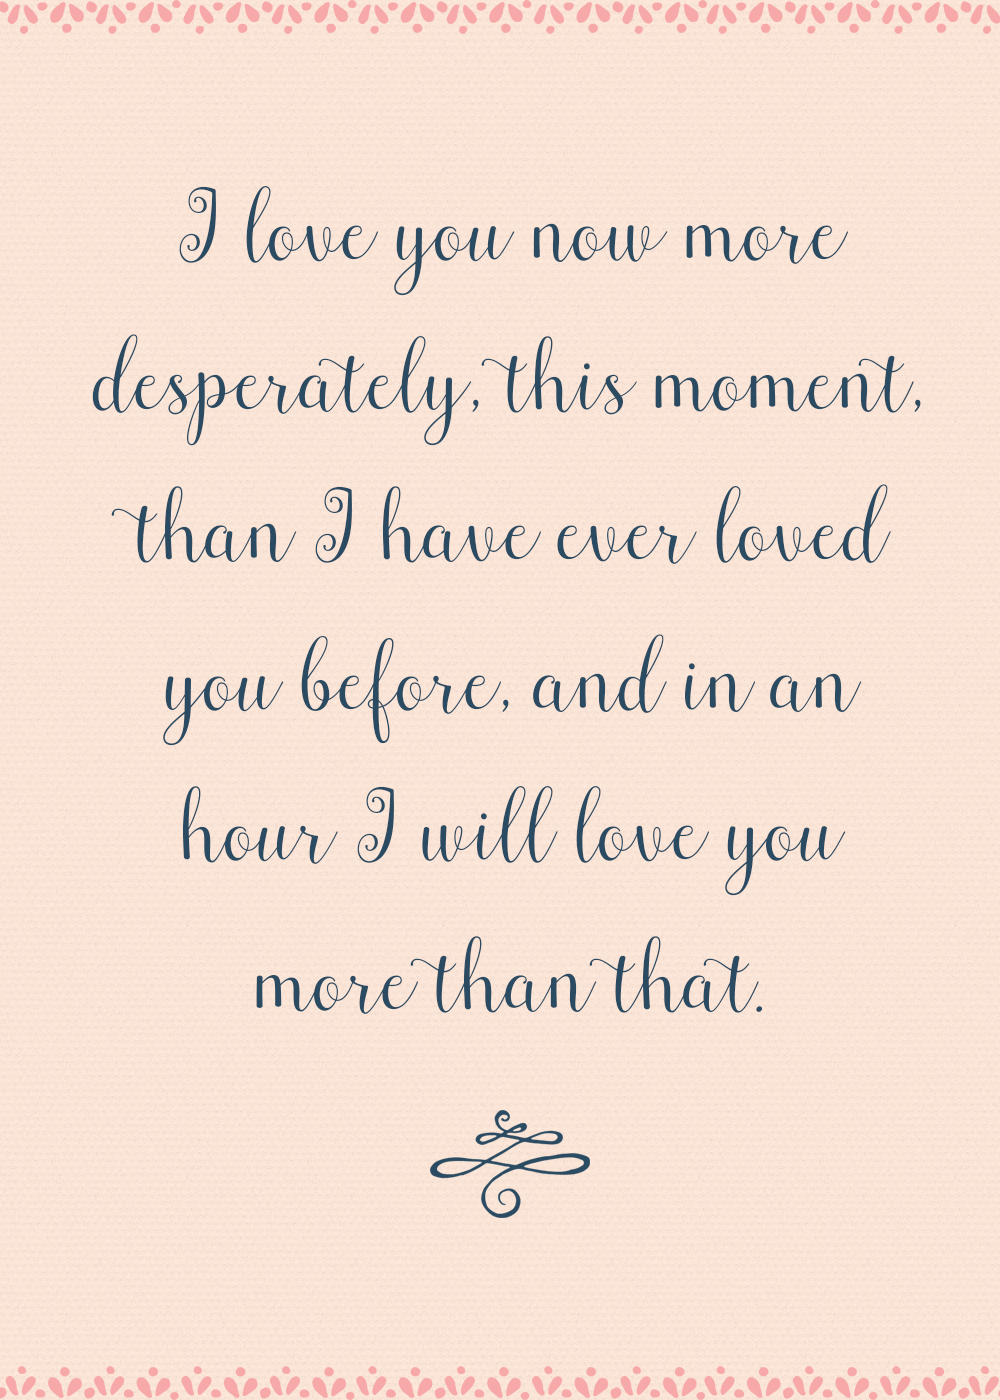 clockwork princess quote - i love you now more desperately